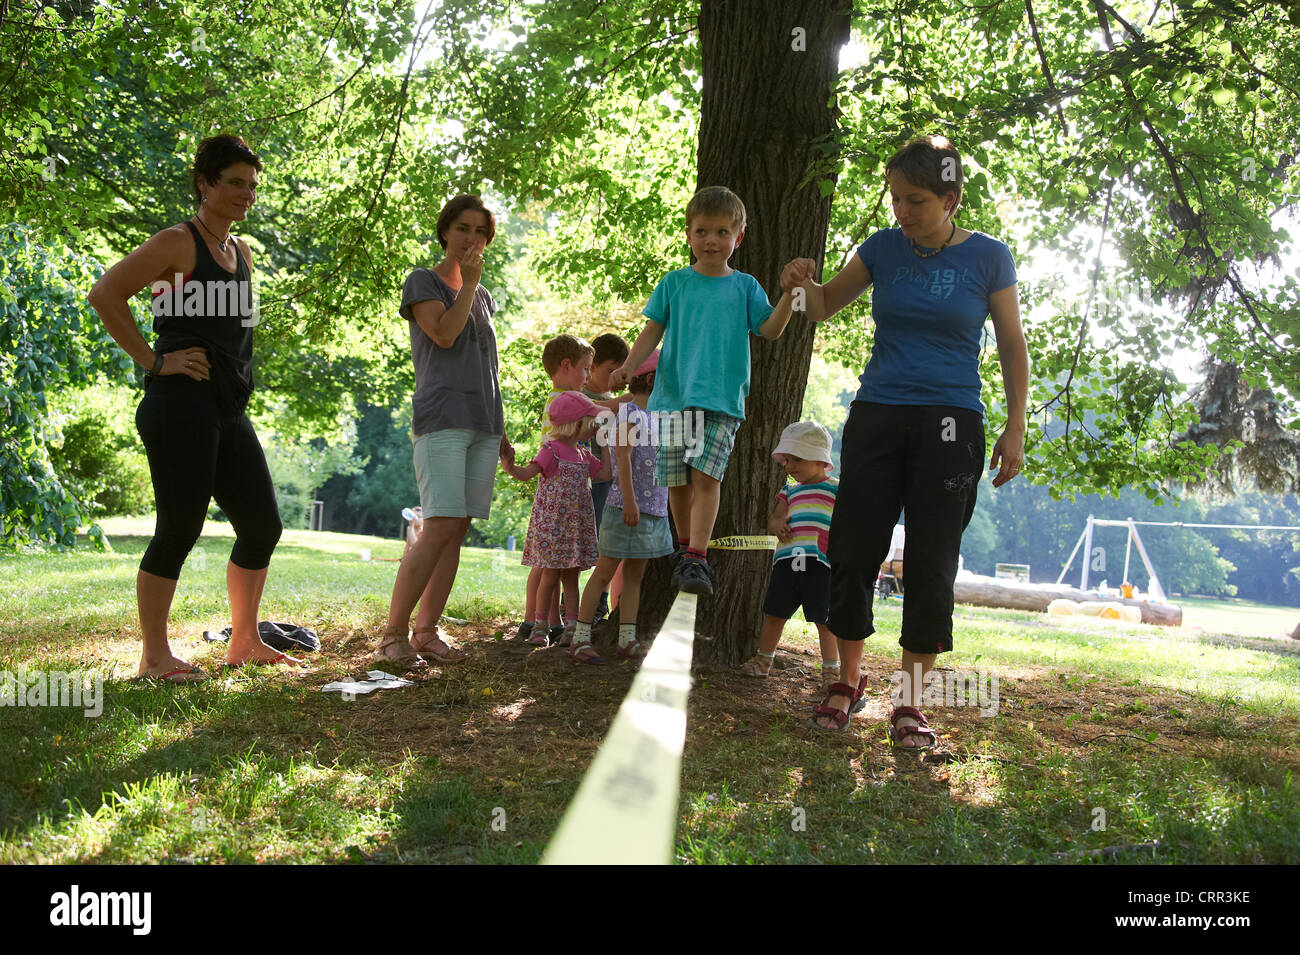 Children and Parents Slacklining in summer park - Stock Image